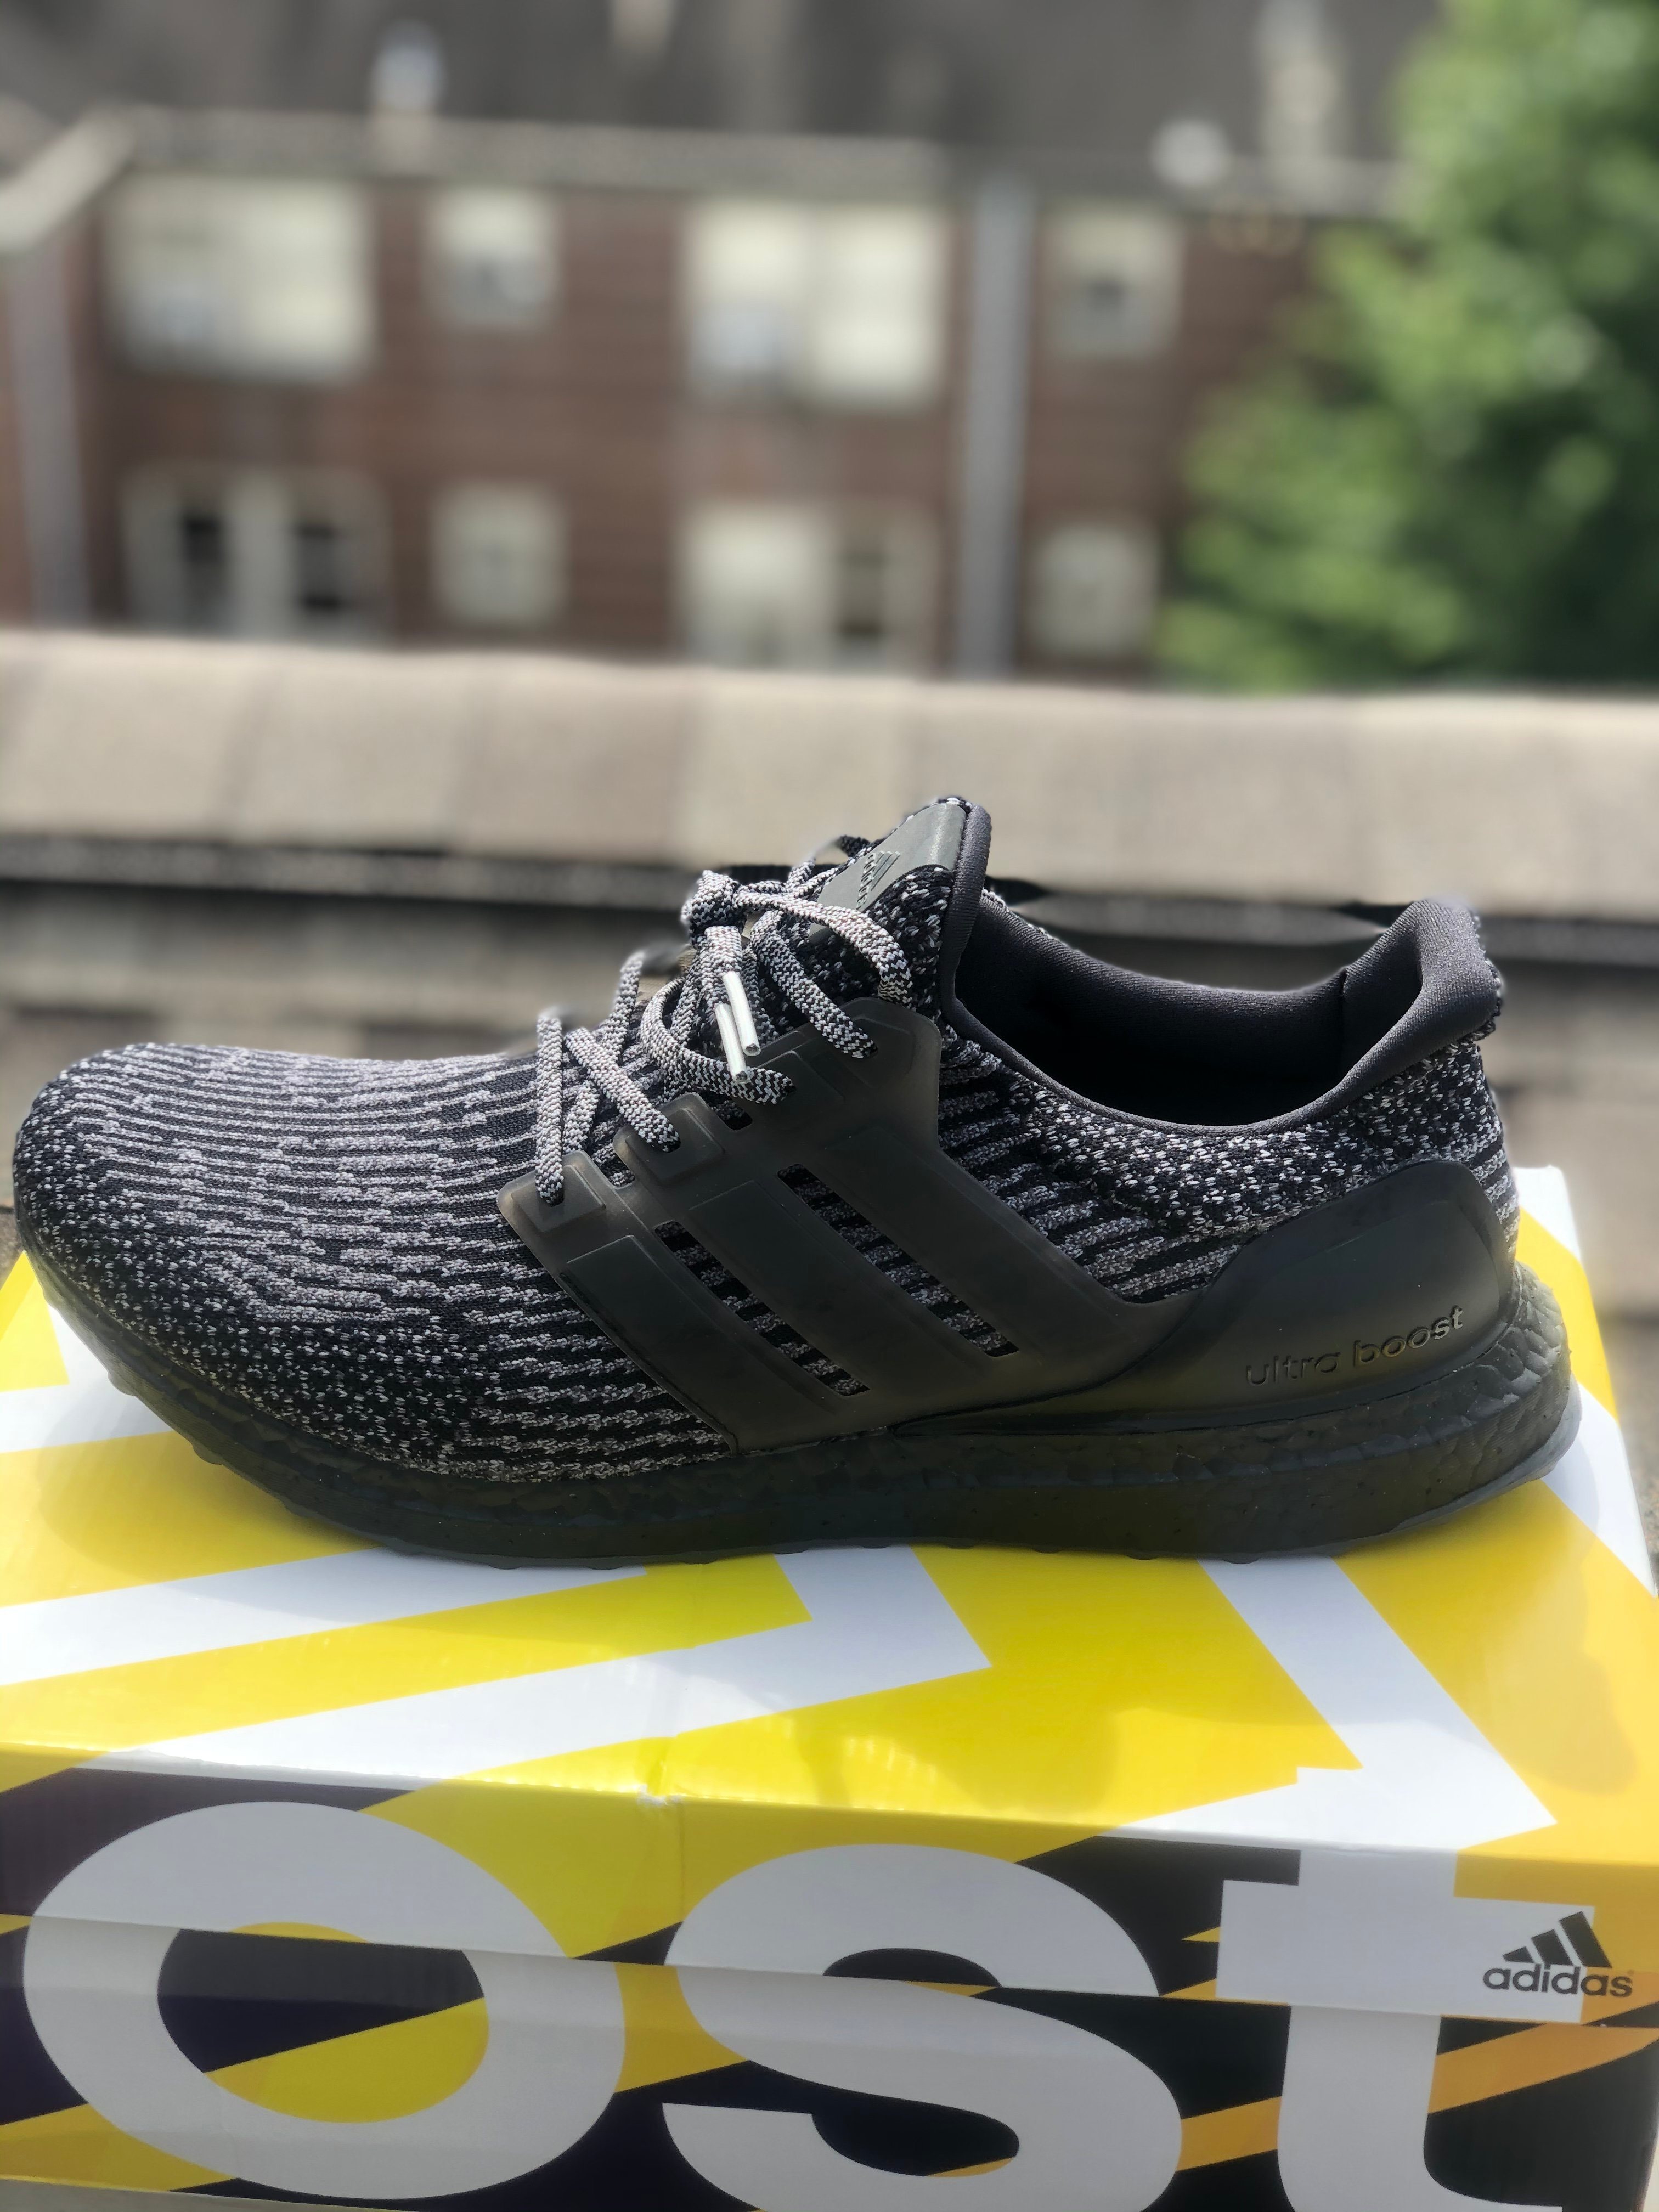 adidas ultra boost size 13 mens